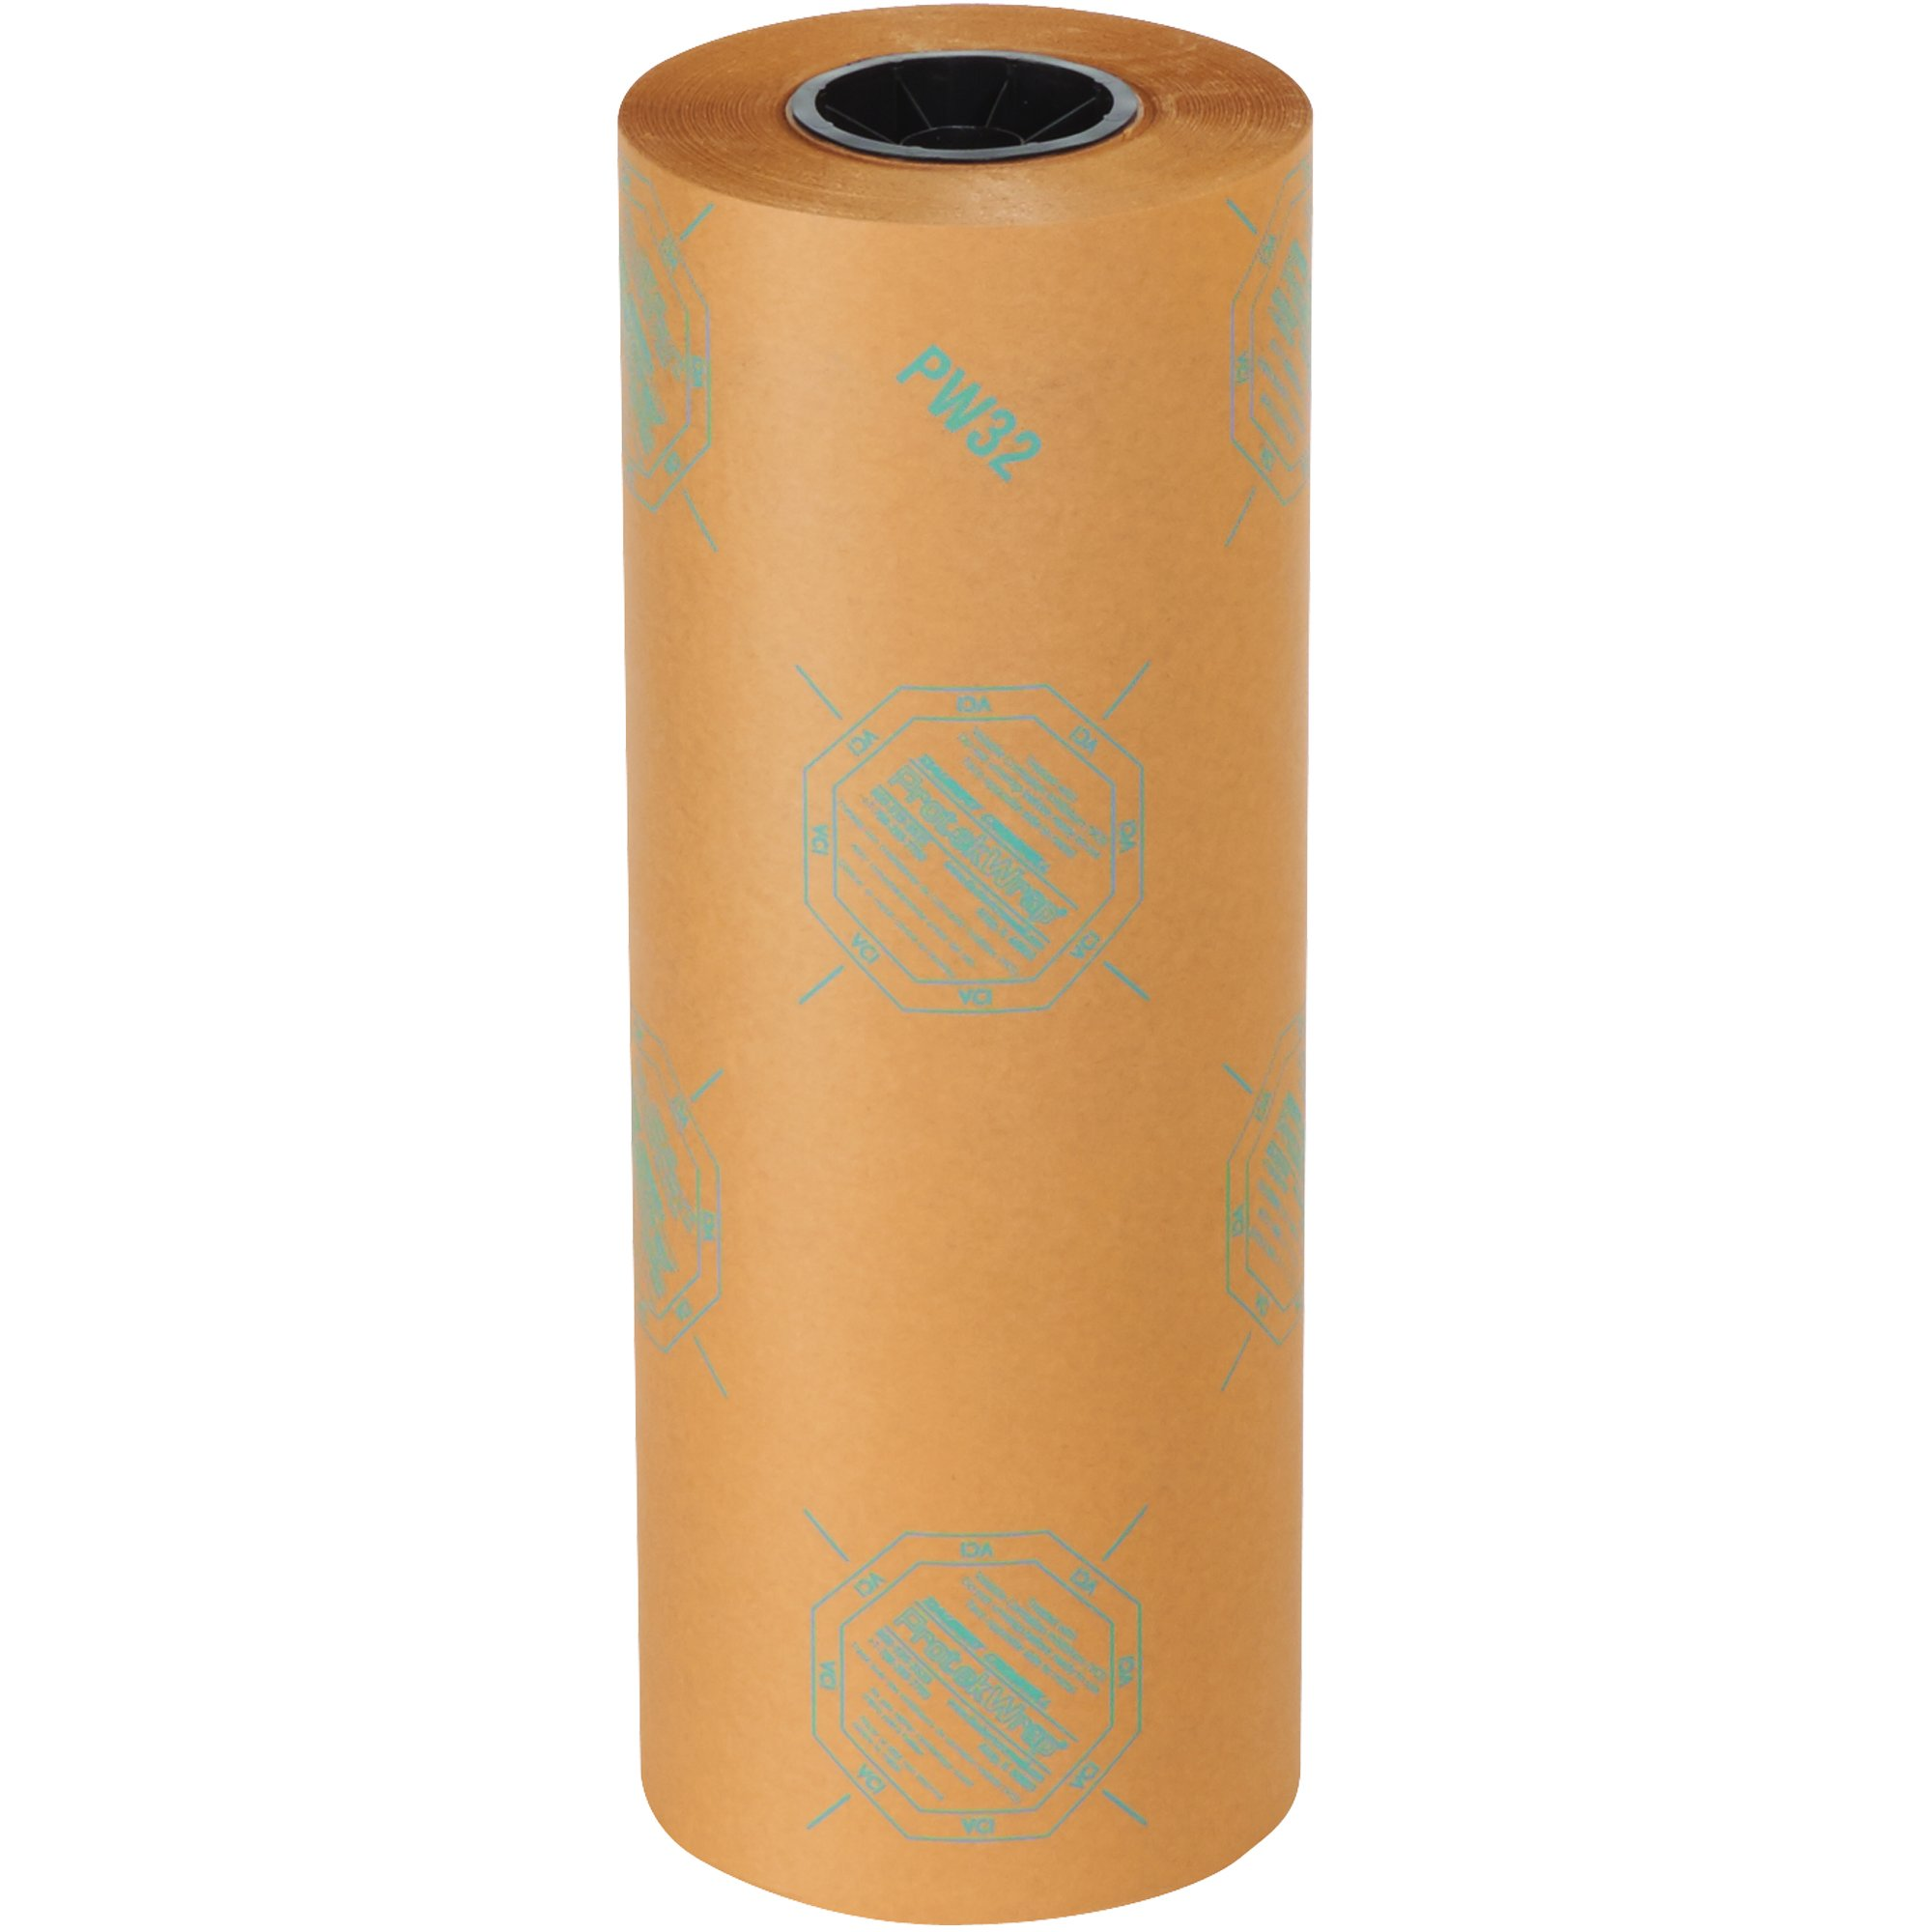 Partners Brand PVCI1835 35# VCI Paper, Industrial Rolls, 18'' x 200 yd, Kraft by Partners Brand